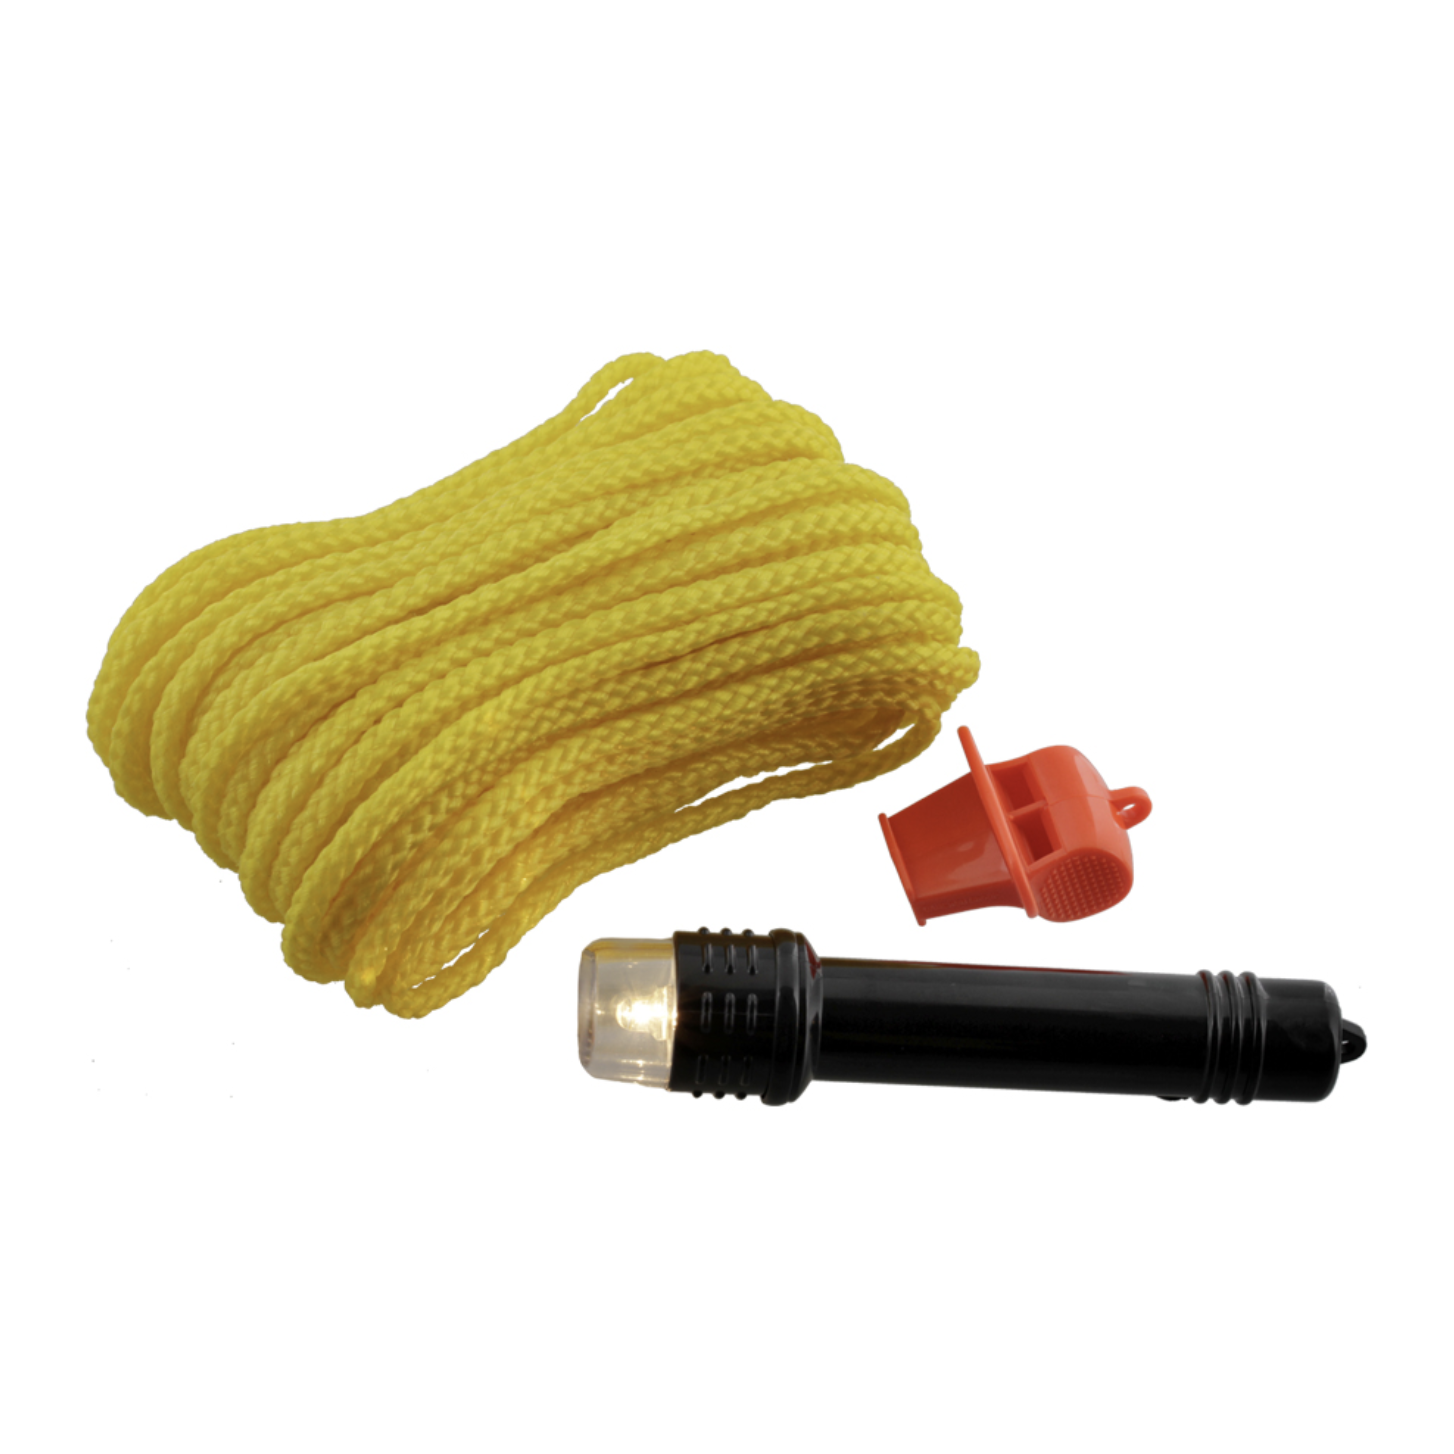 Safety & Rescue: 779 Small Vessel Safety Equipment Kit by Scotty - Image 4018